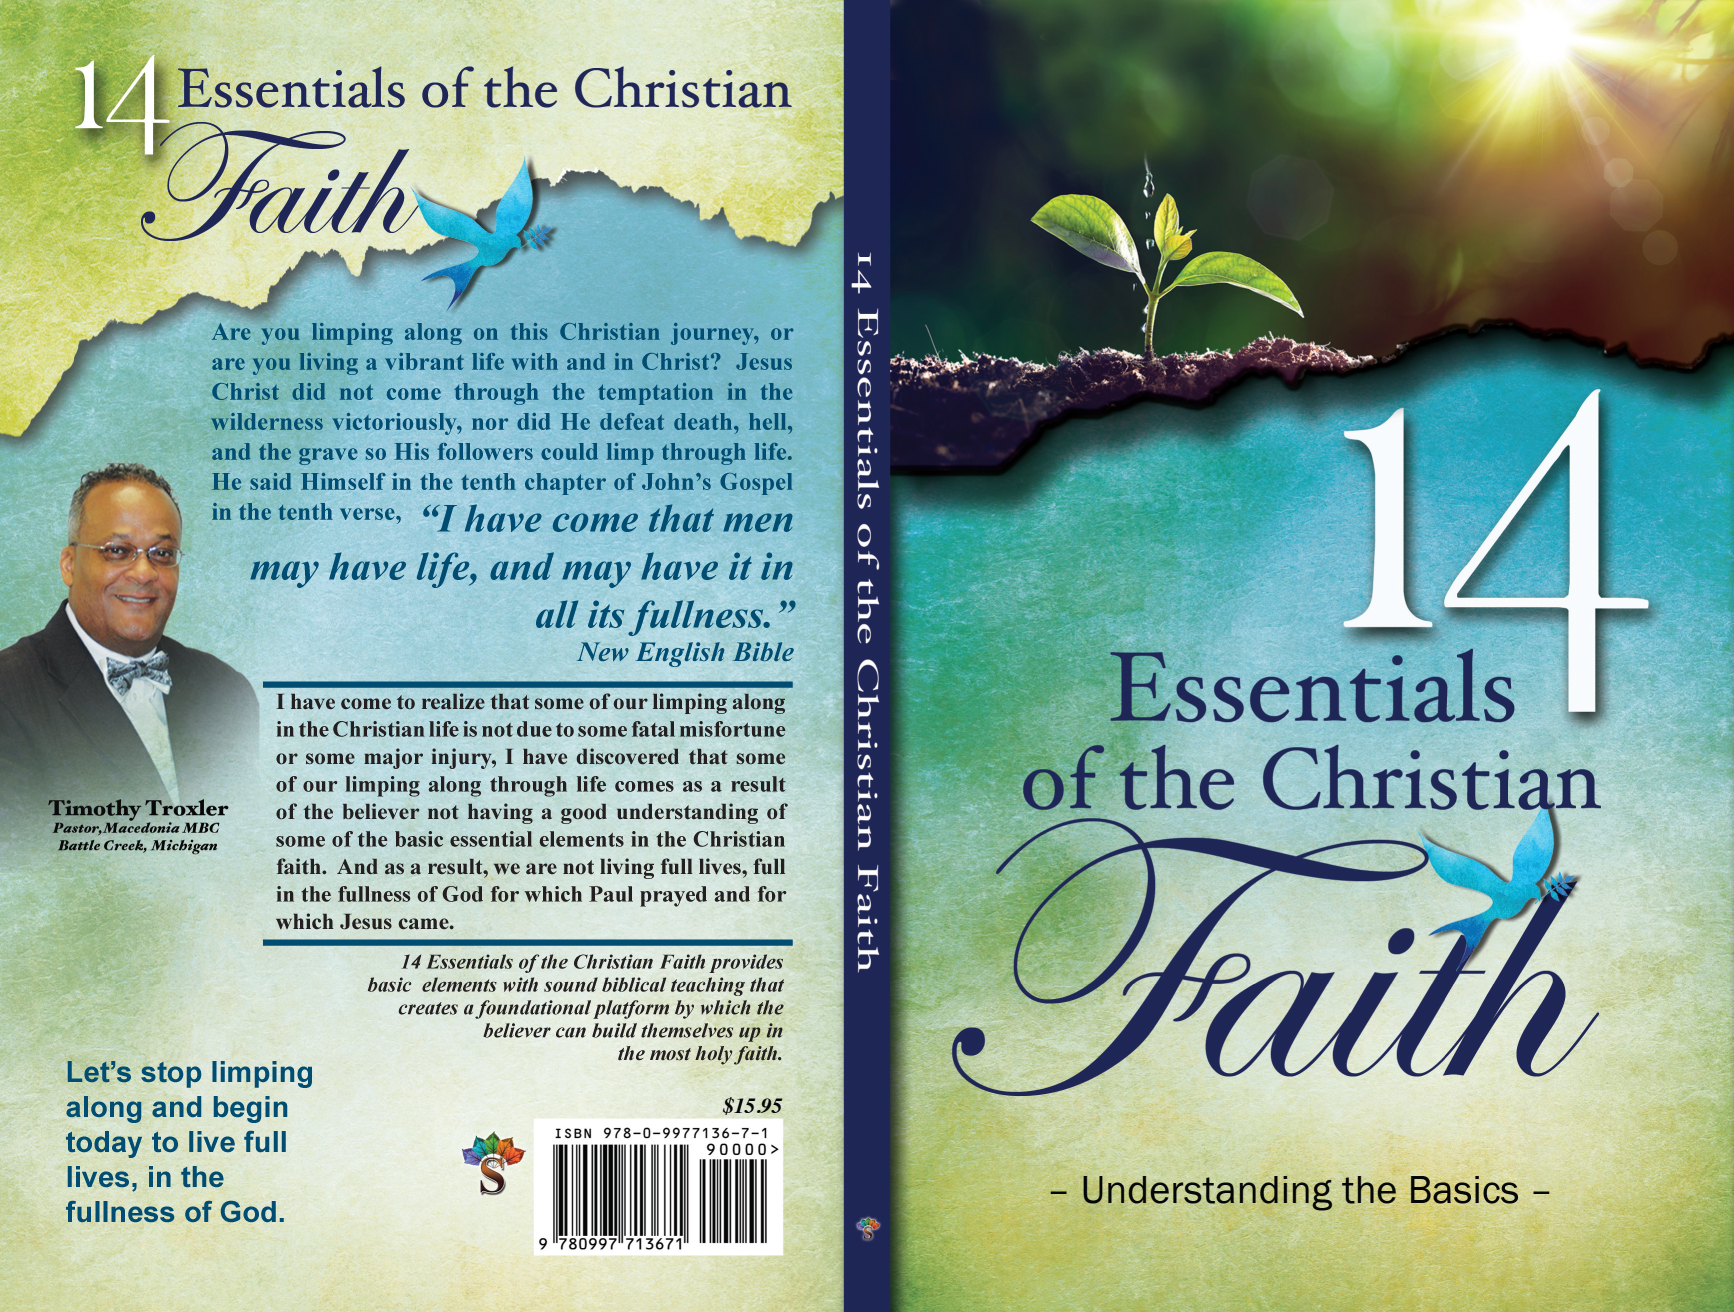 Macedonia Missionary Baptist Church 14 Essentials of the Christian Faith